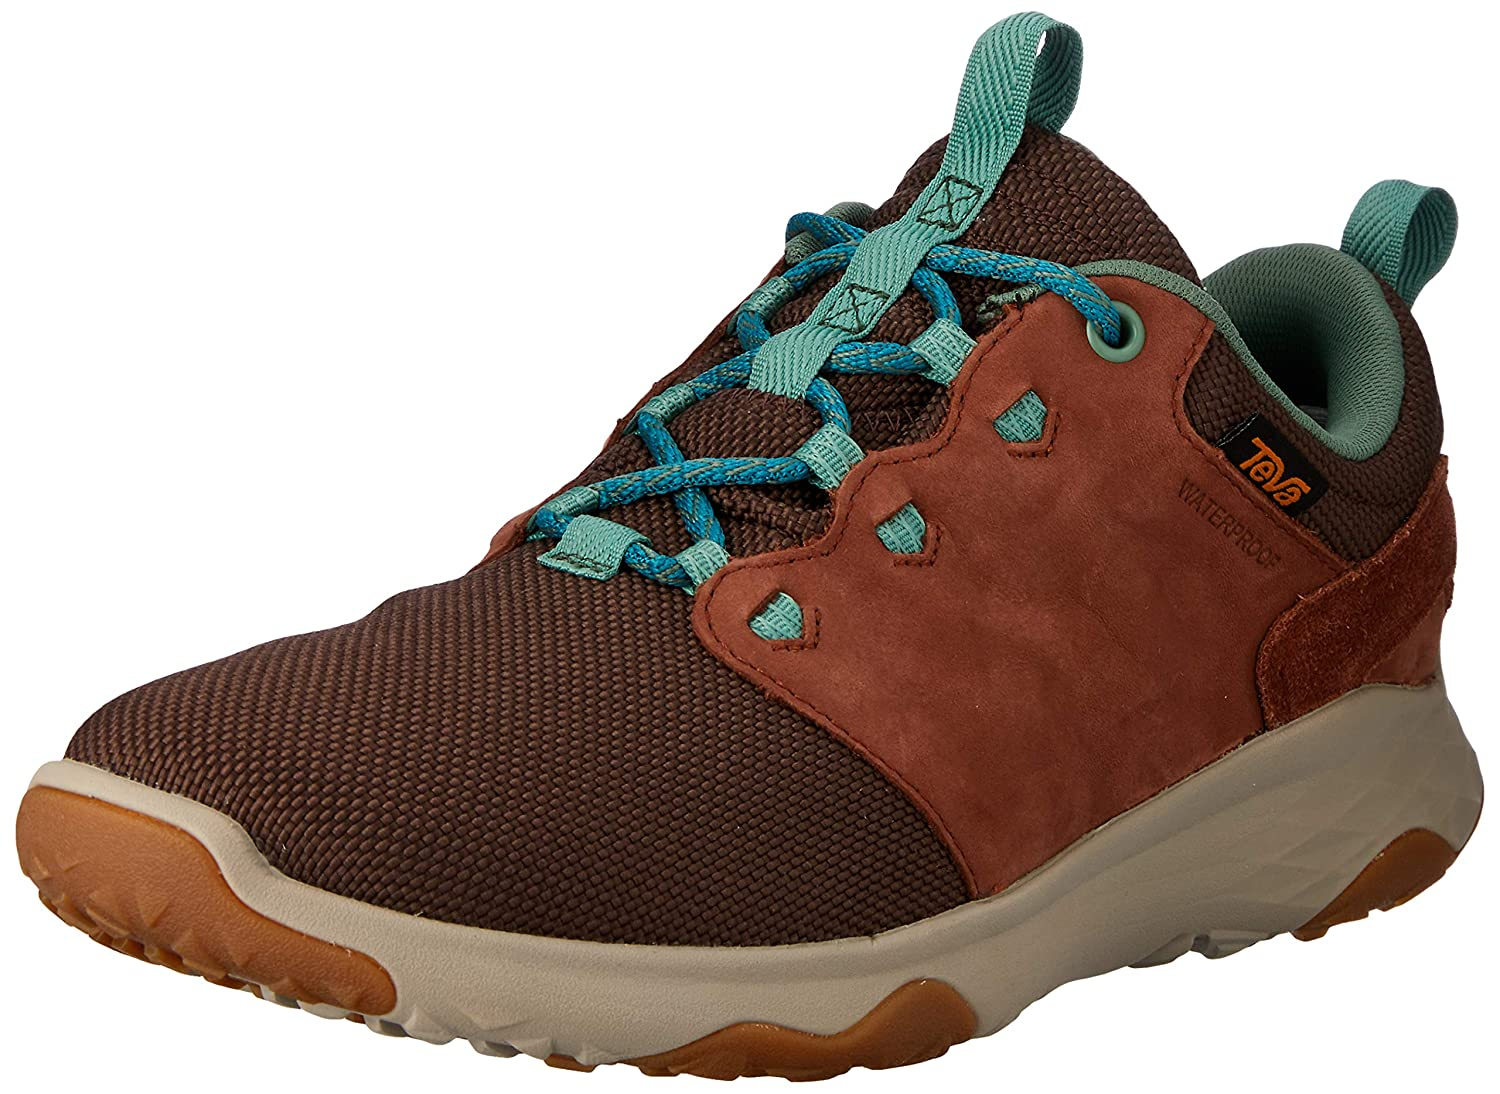 Amazon.com: Teva Arrowood Venture - Zapatillas impermeables ...